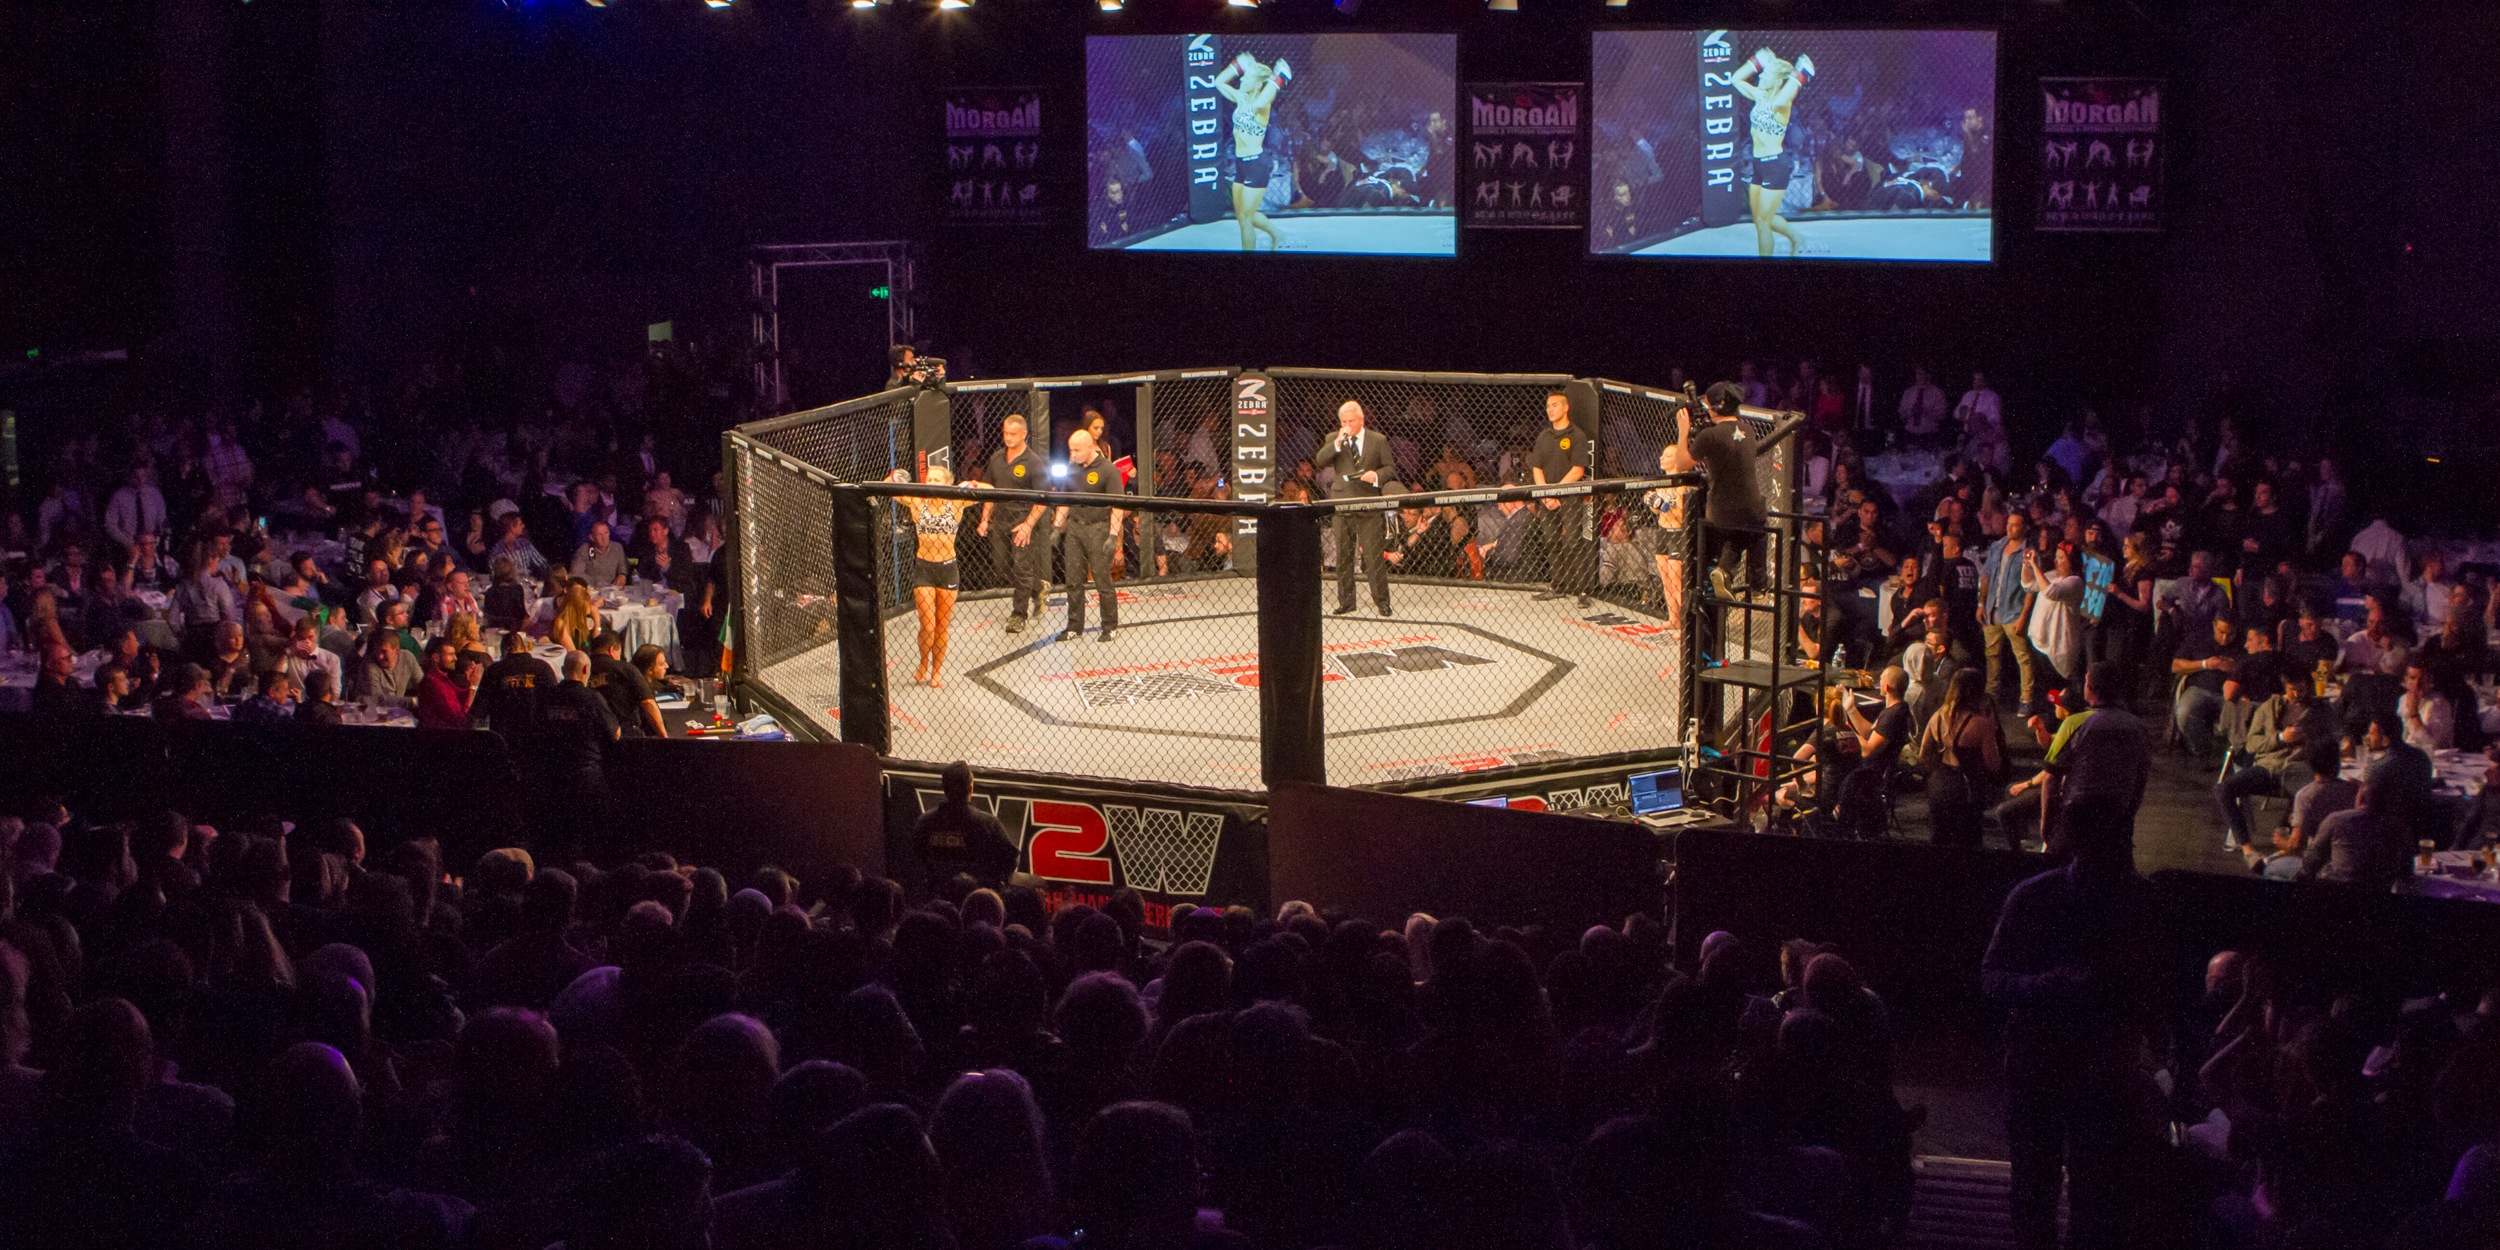 Champion's Creed to Host Wimp2Warrior's Fight Night on Sat, October 19